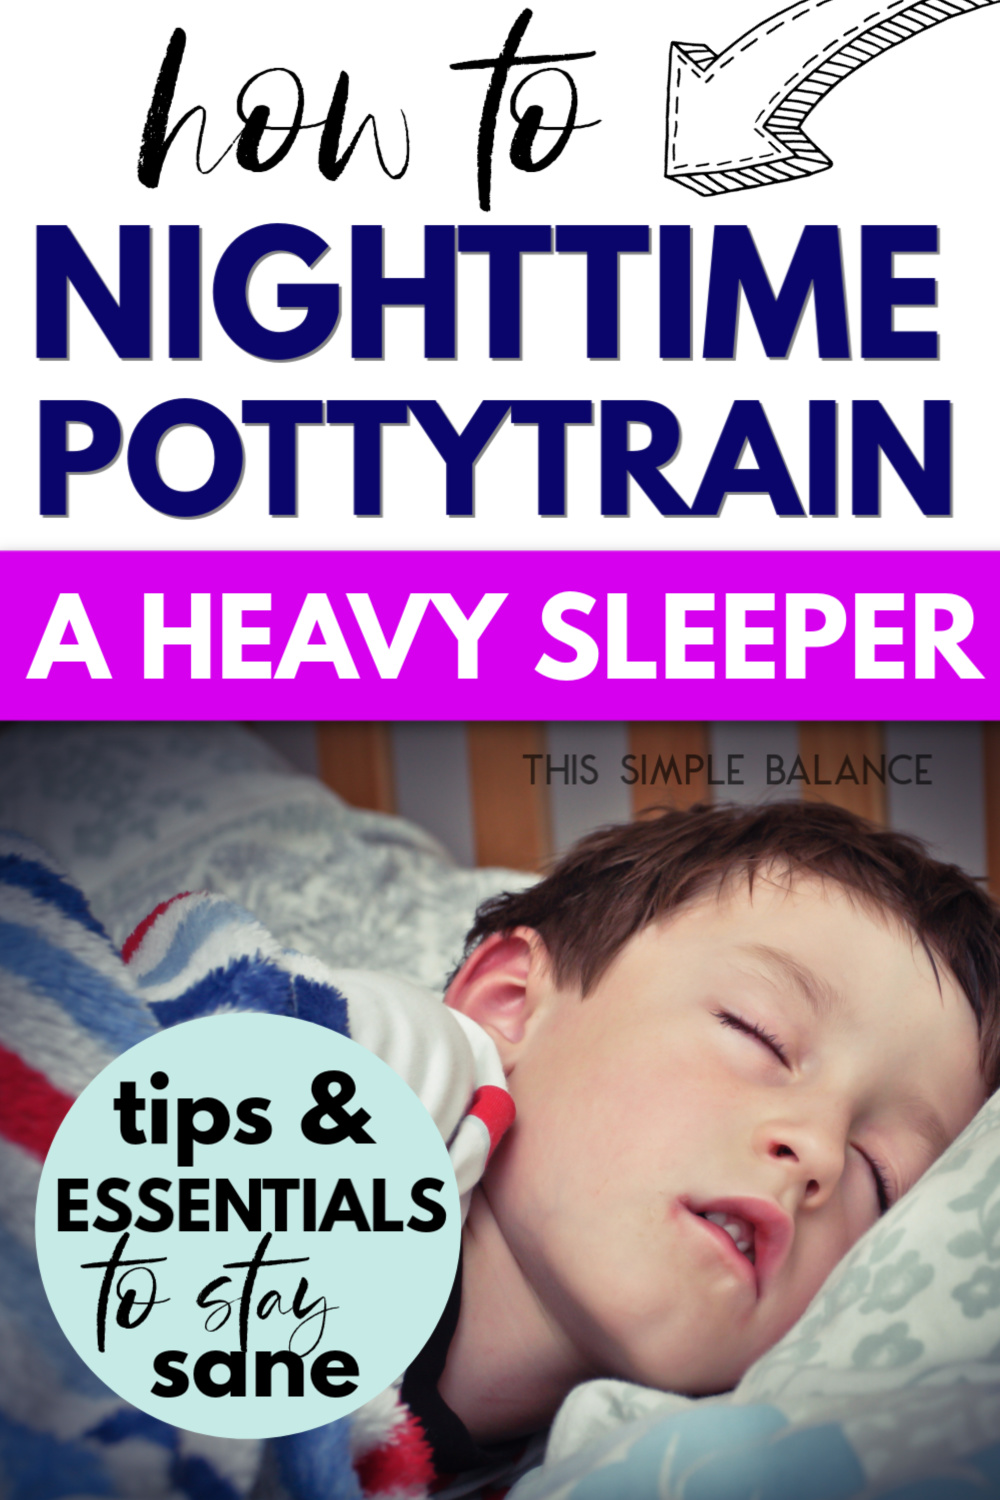 heavy sleeper - child trying to nighttime potty train